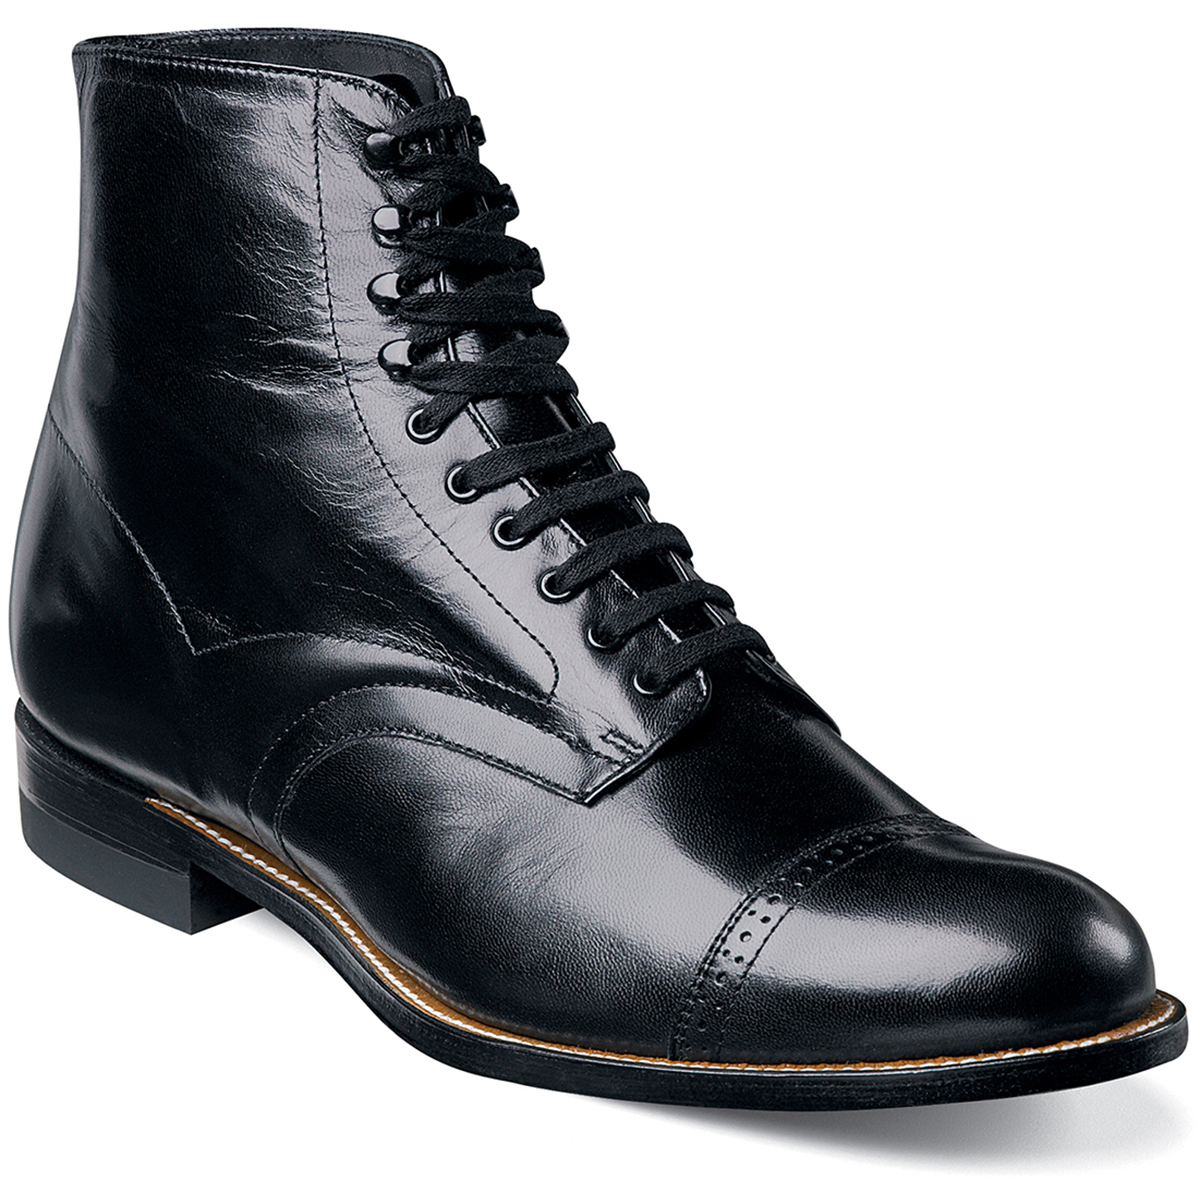 Stacy Adams Madison Leather High Top Cap Toe Boot